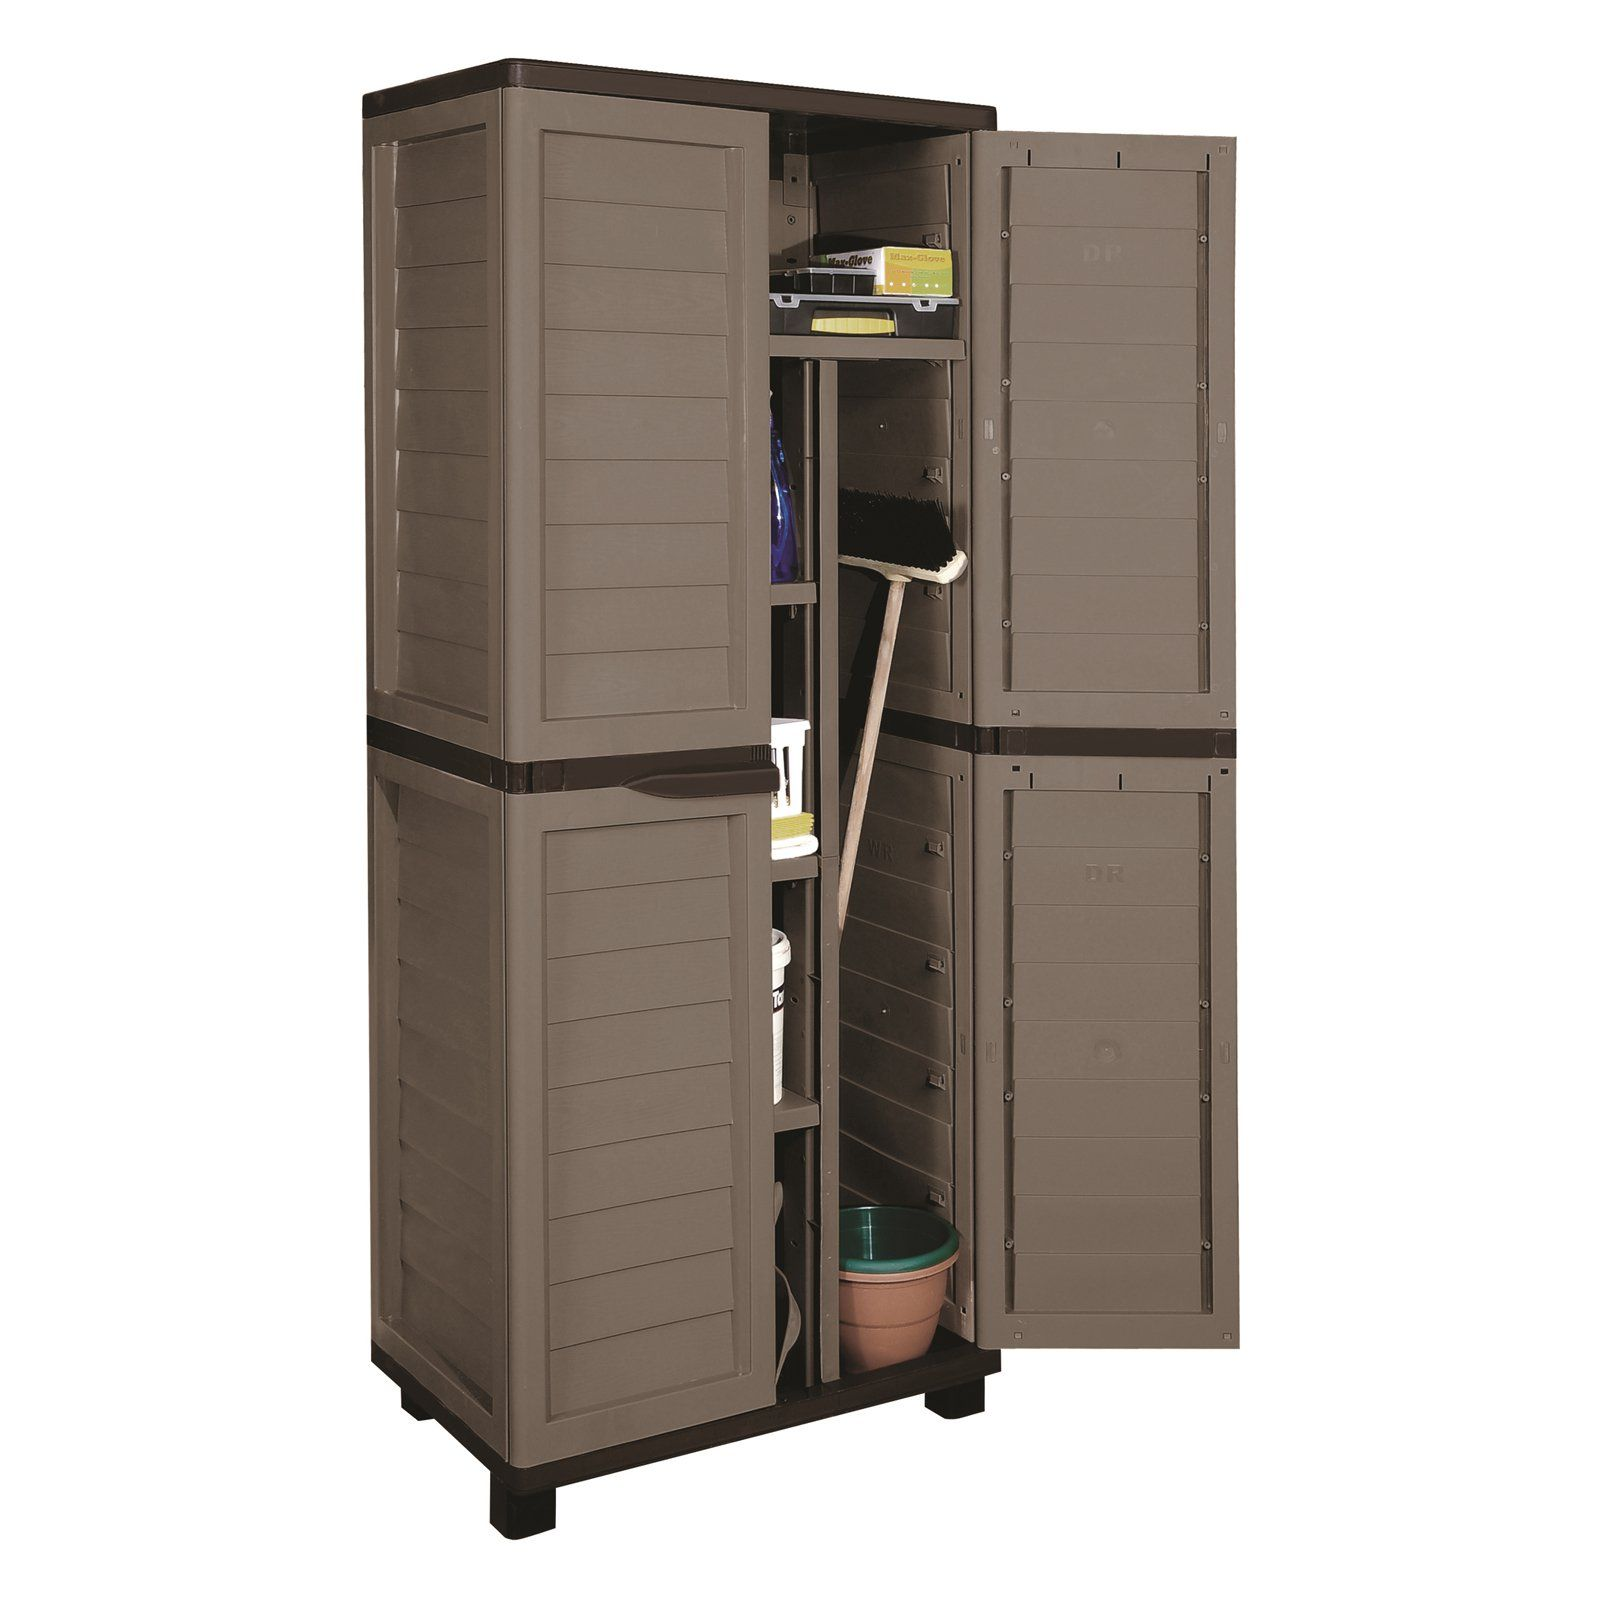 Starplast Storage Cabinet With 4 Shelves And Vertical Partition